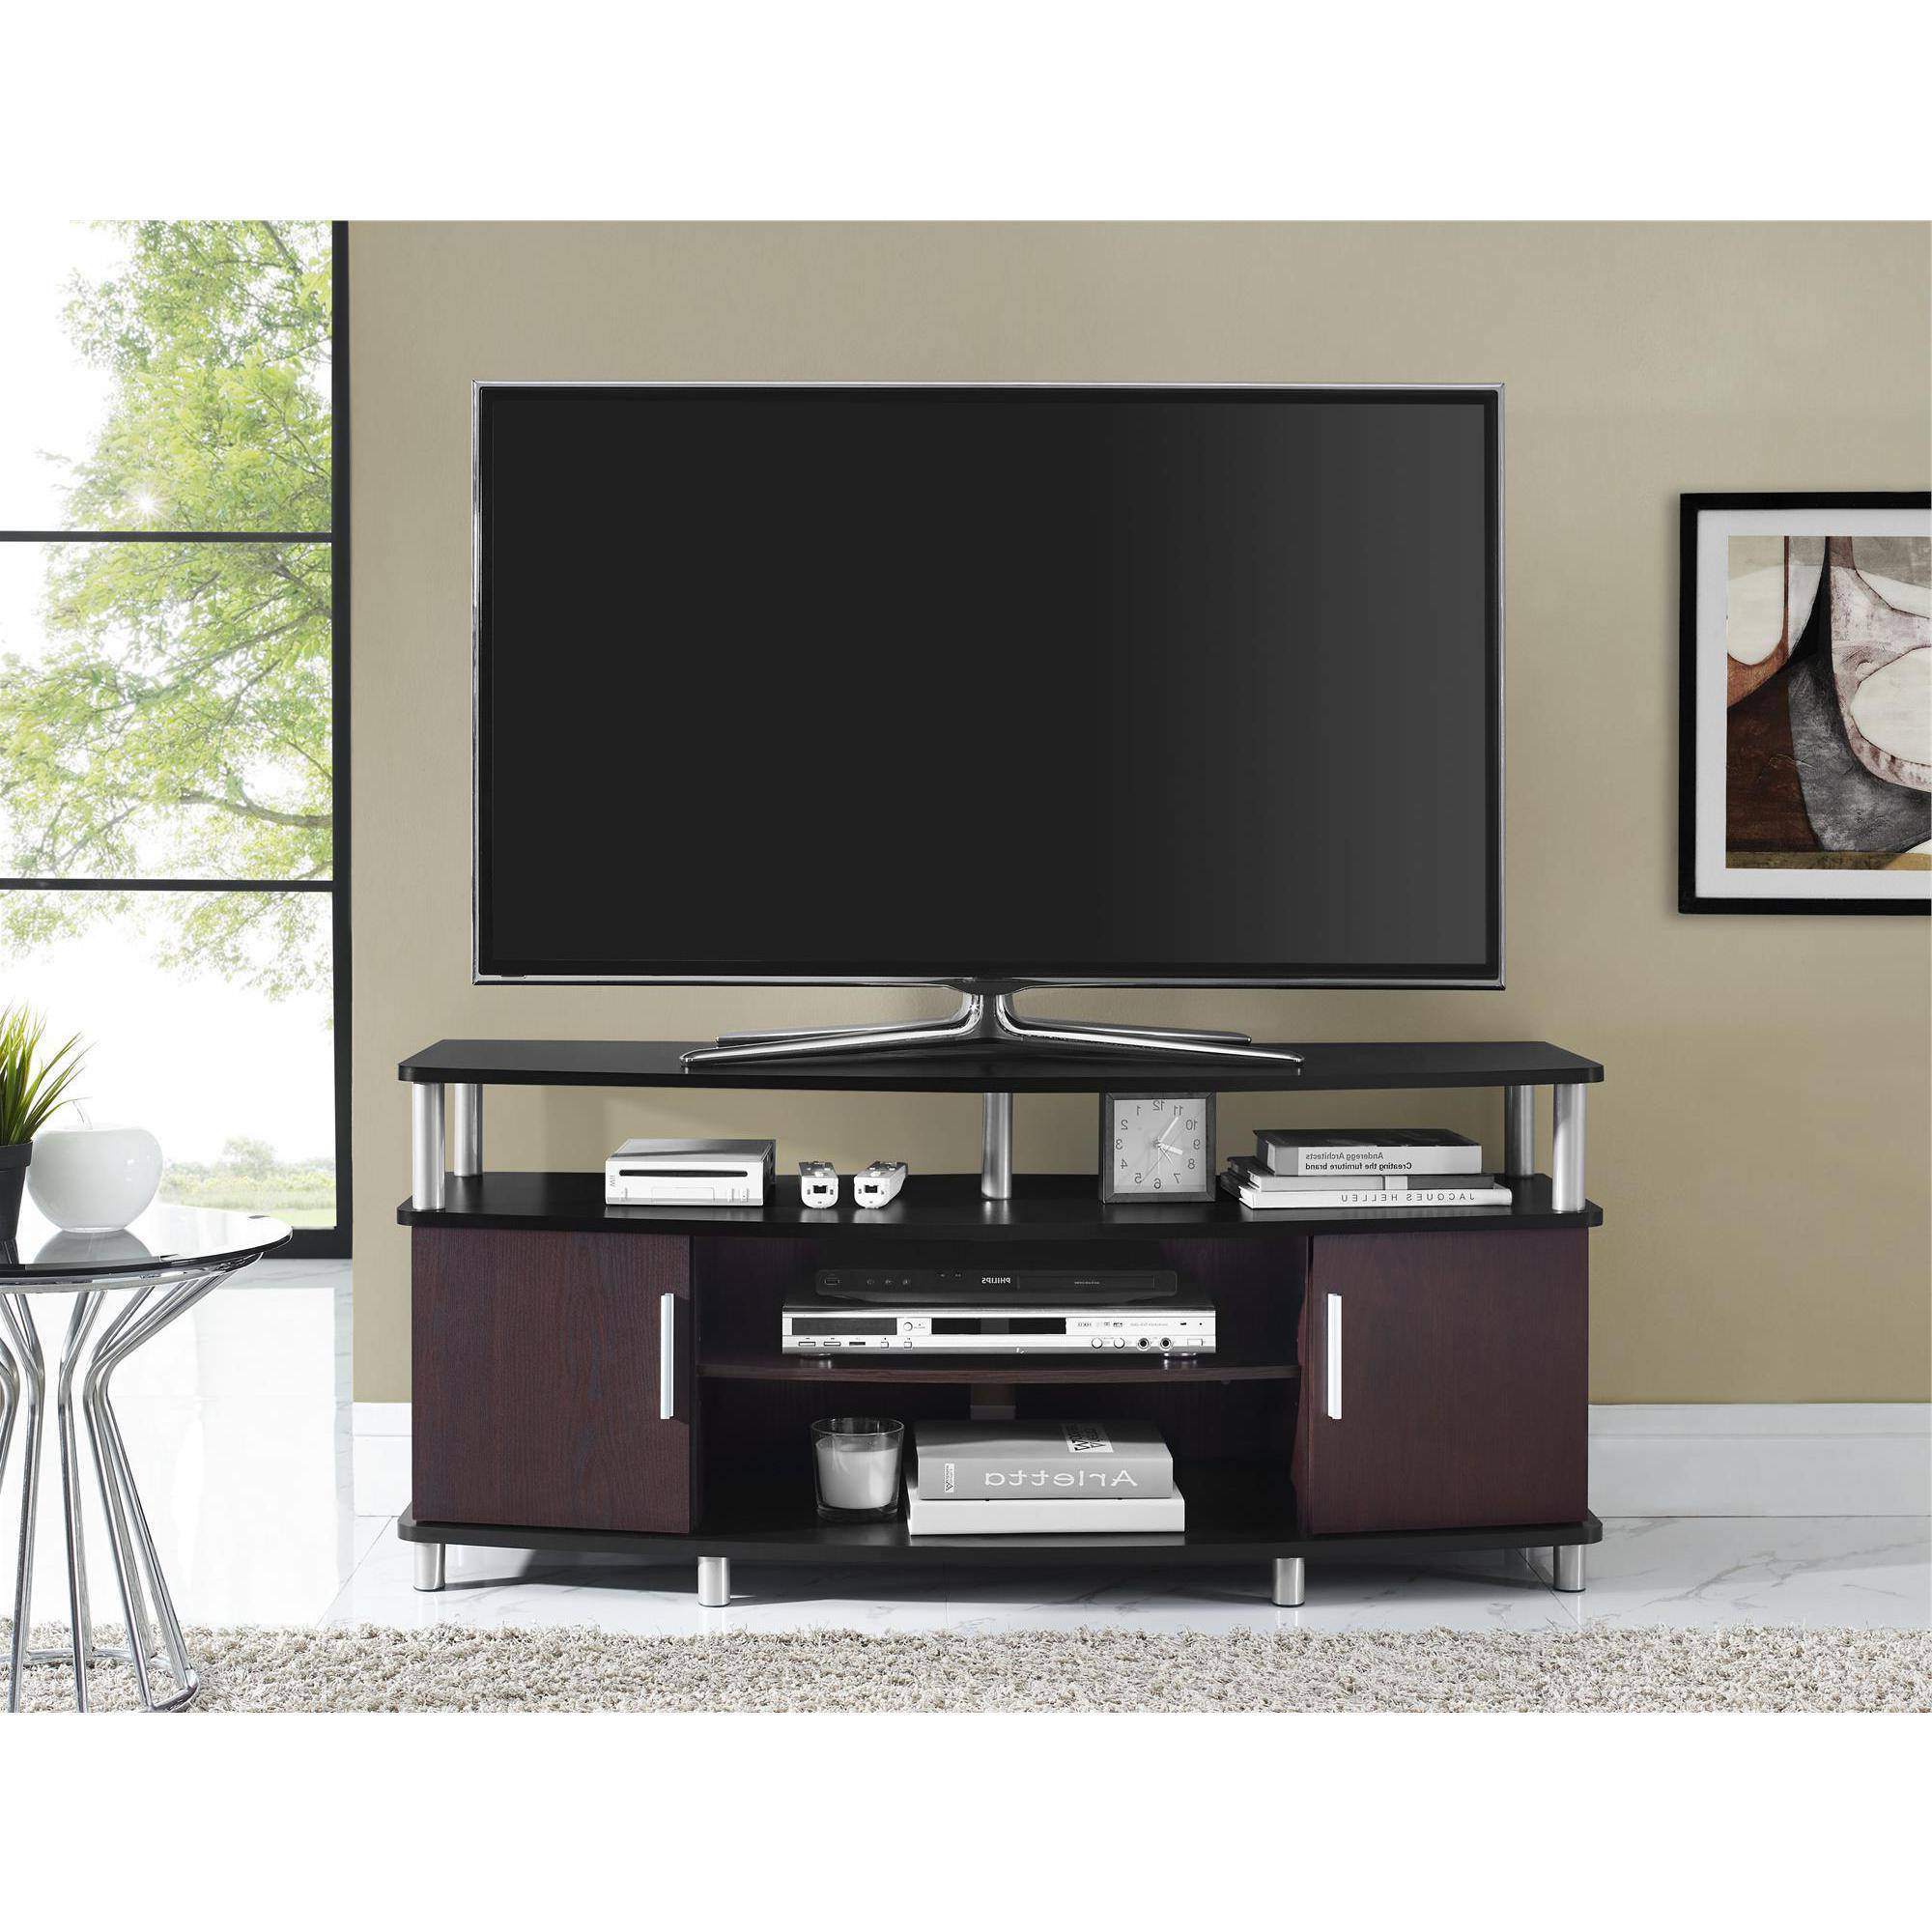 2018 Wooden Tv Stands For 55 Inch Flat Screen With Regard To Pretentious Repurposed Pallet Tv Stand Her Diy Tv Stand Ideas In (Gallery 7 of 20)